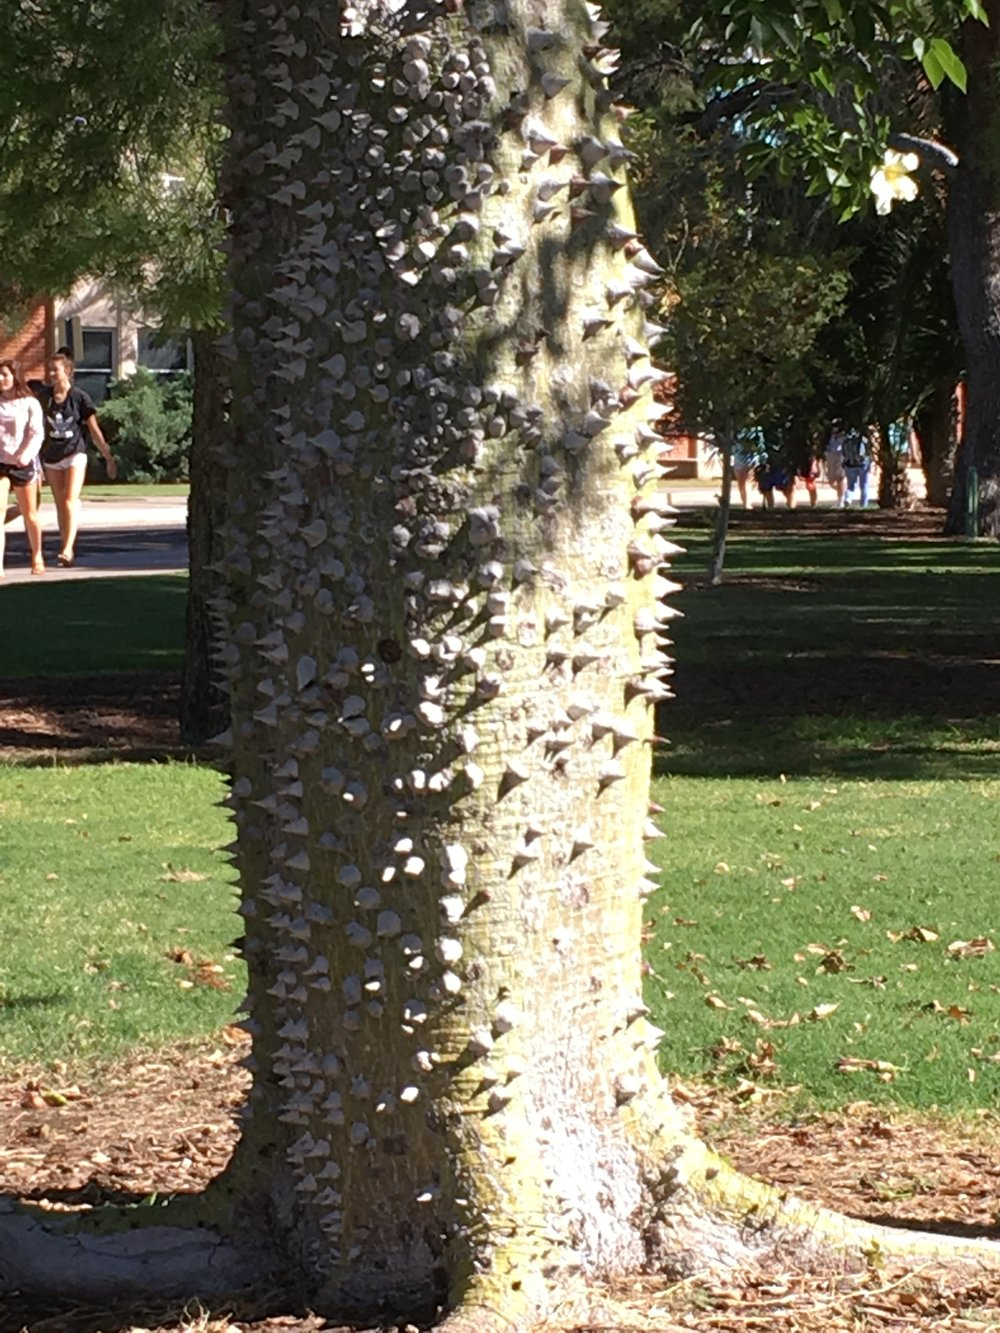 This is the conicle-covered trunk of the silk floss tree at the northeast corner of Park Avenue and Fourth Street on campus. The green trunk means this is a relatively young tree. When it ages, the trunk turns gray, according to the web site of the UA Arboretum. There's an older tree on the south side of the engineering building.